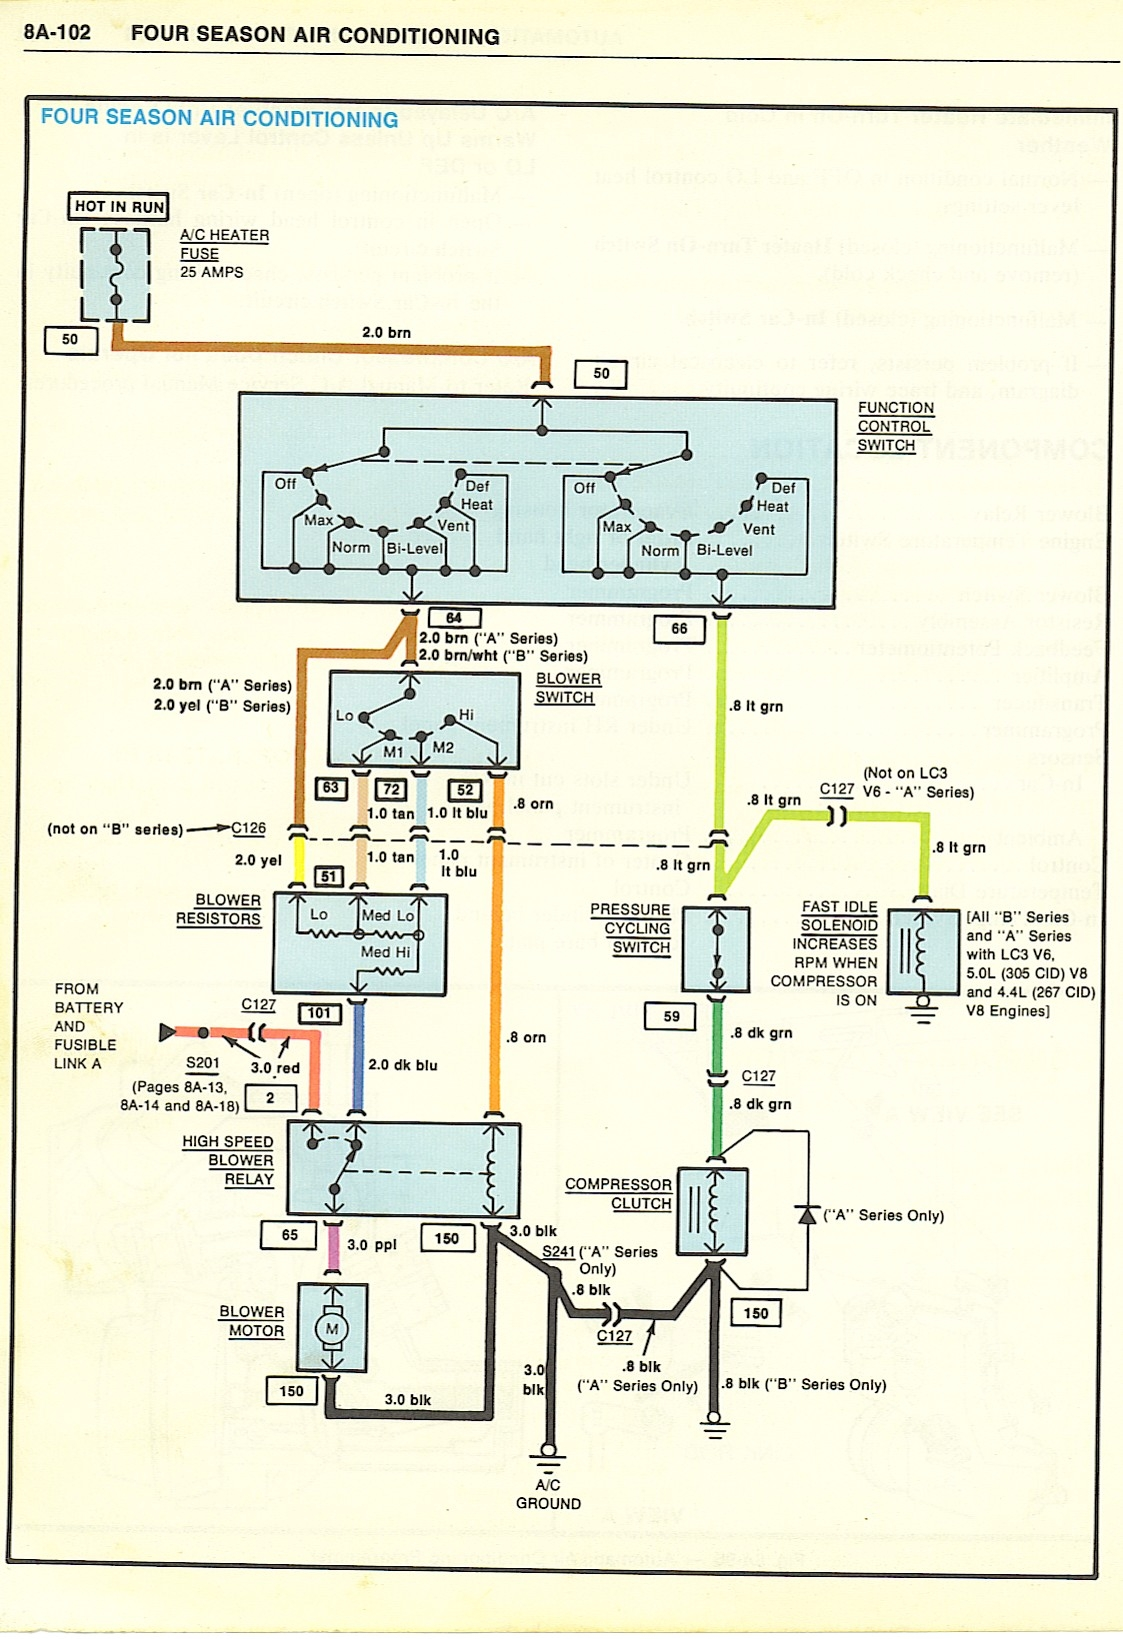 1968 FourSeasonAirConditioner chevy diagrams 71 chevelle wiring diagram at nearapp.co